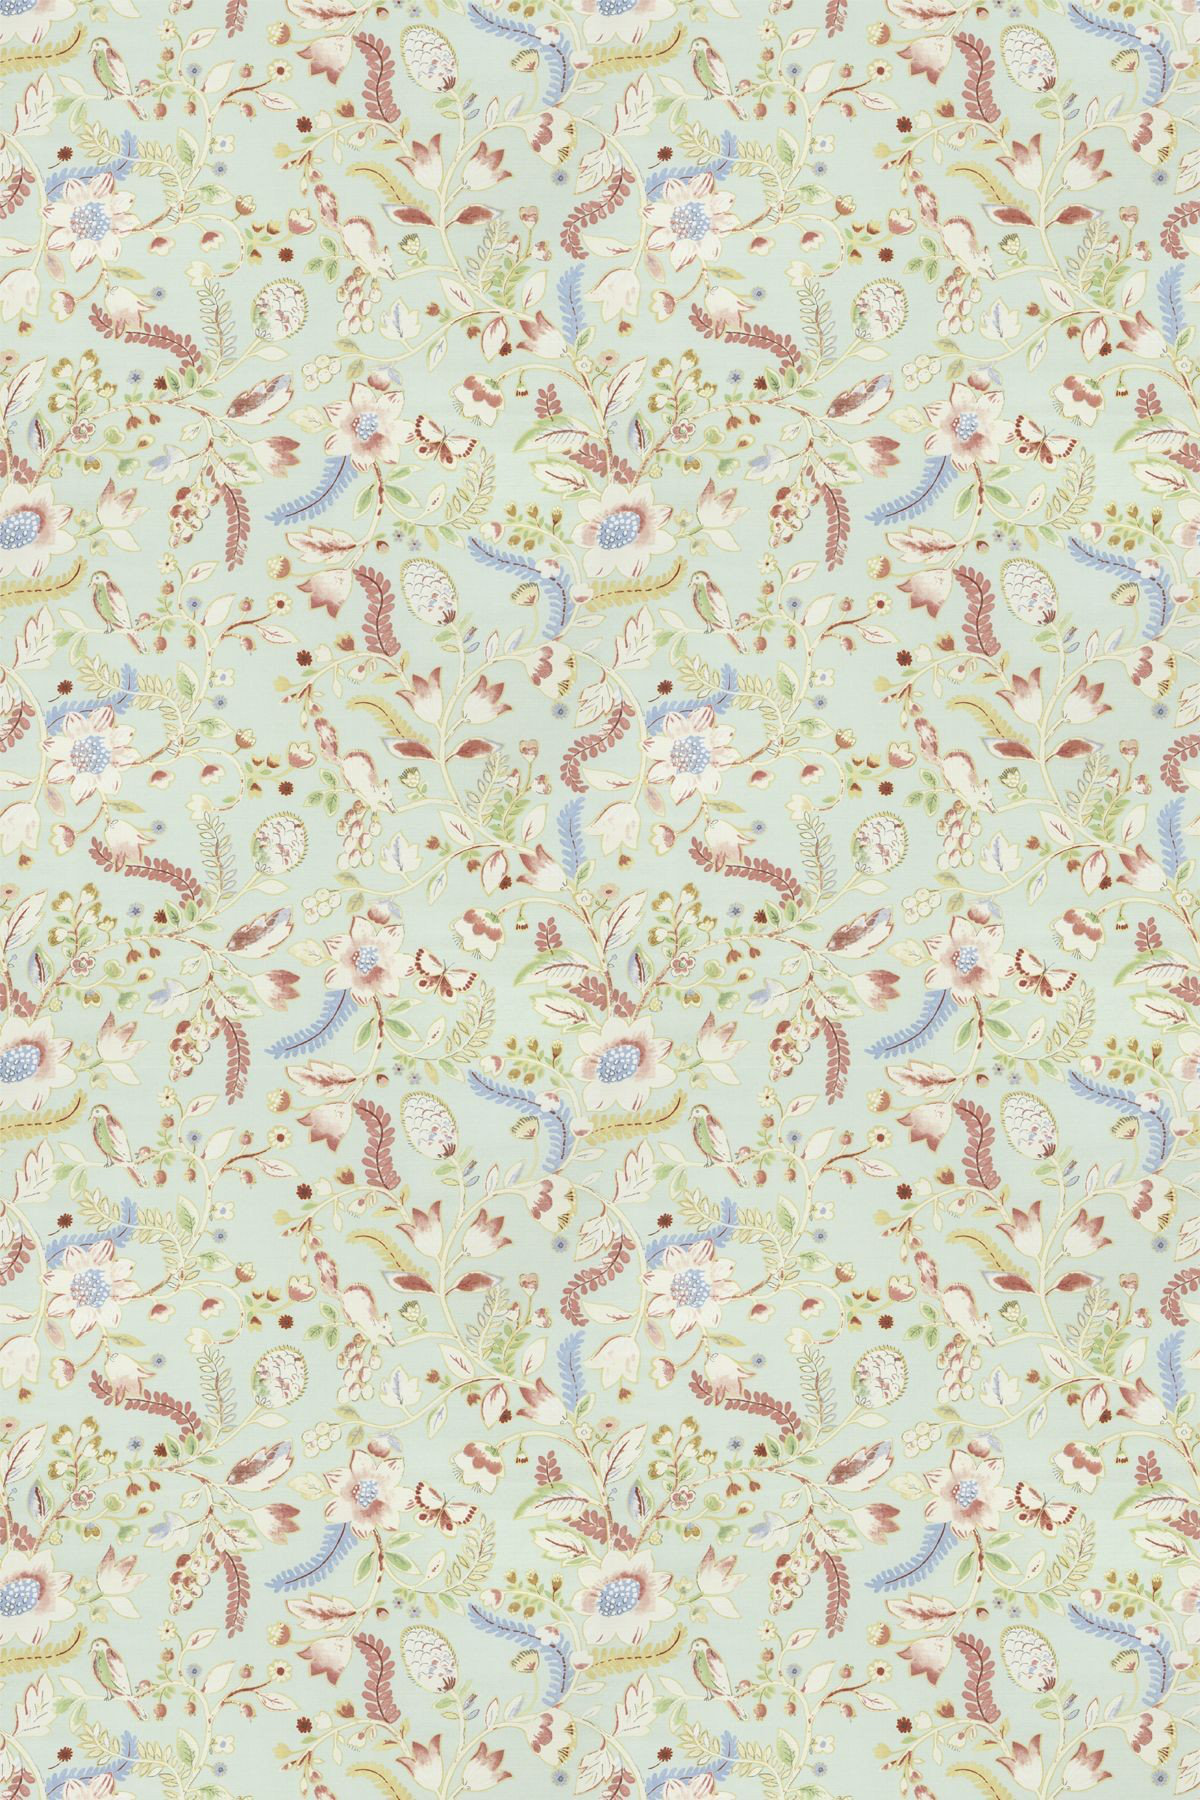 Image of Blendworth Fabric Daydreamer, Daydream/004